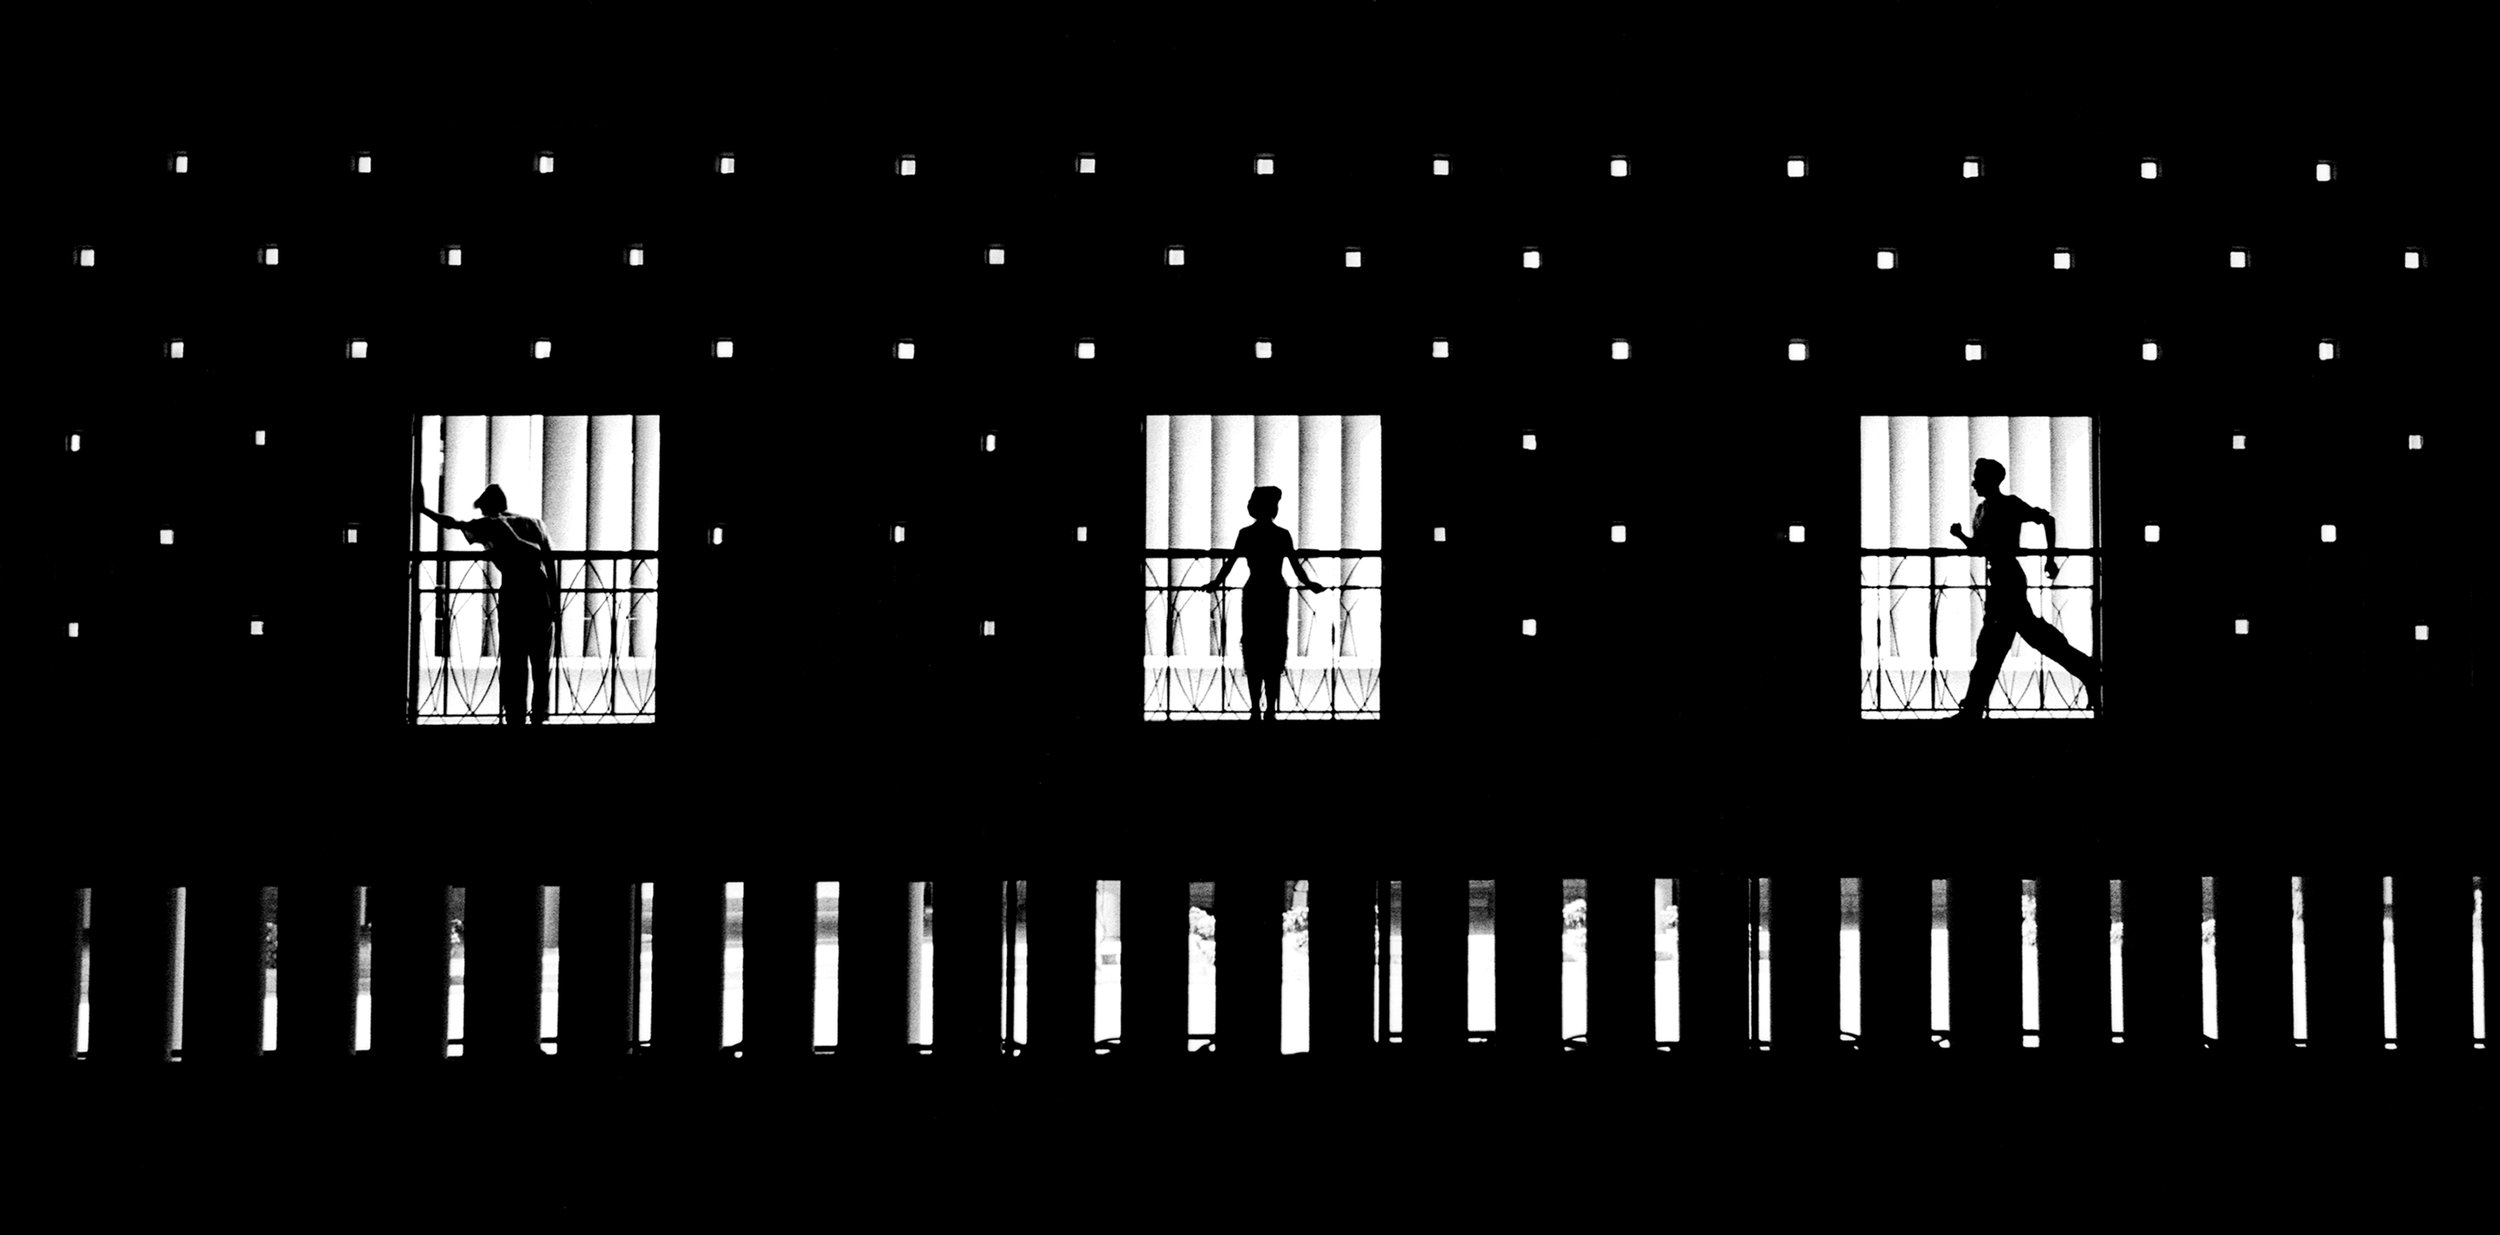 Fan Ho_On the stage of life.jpg